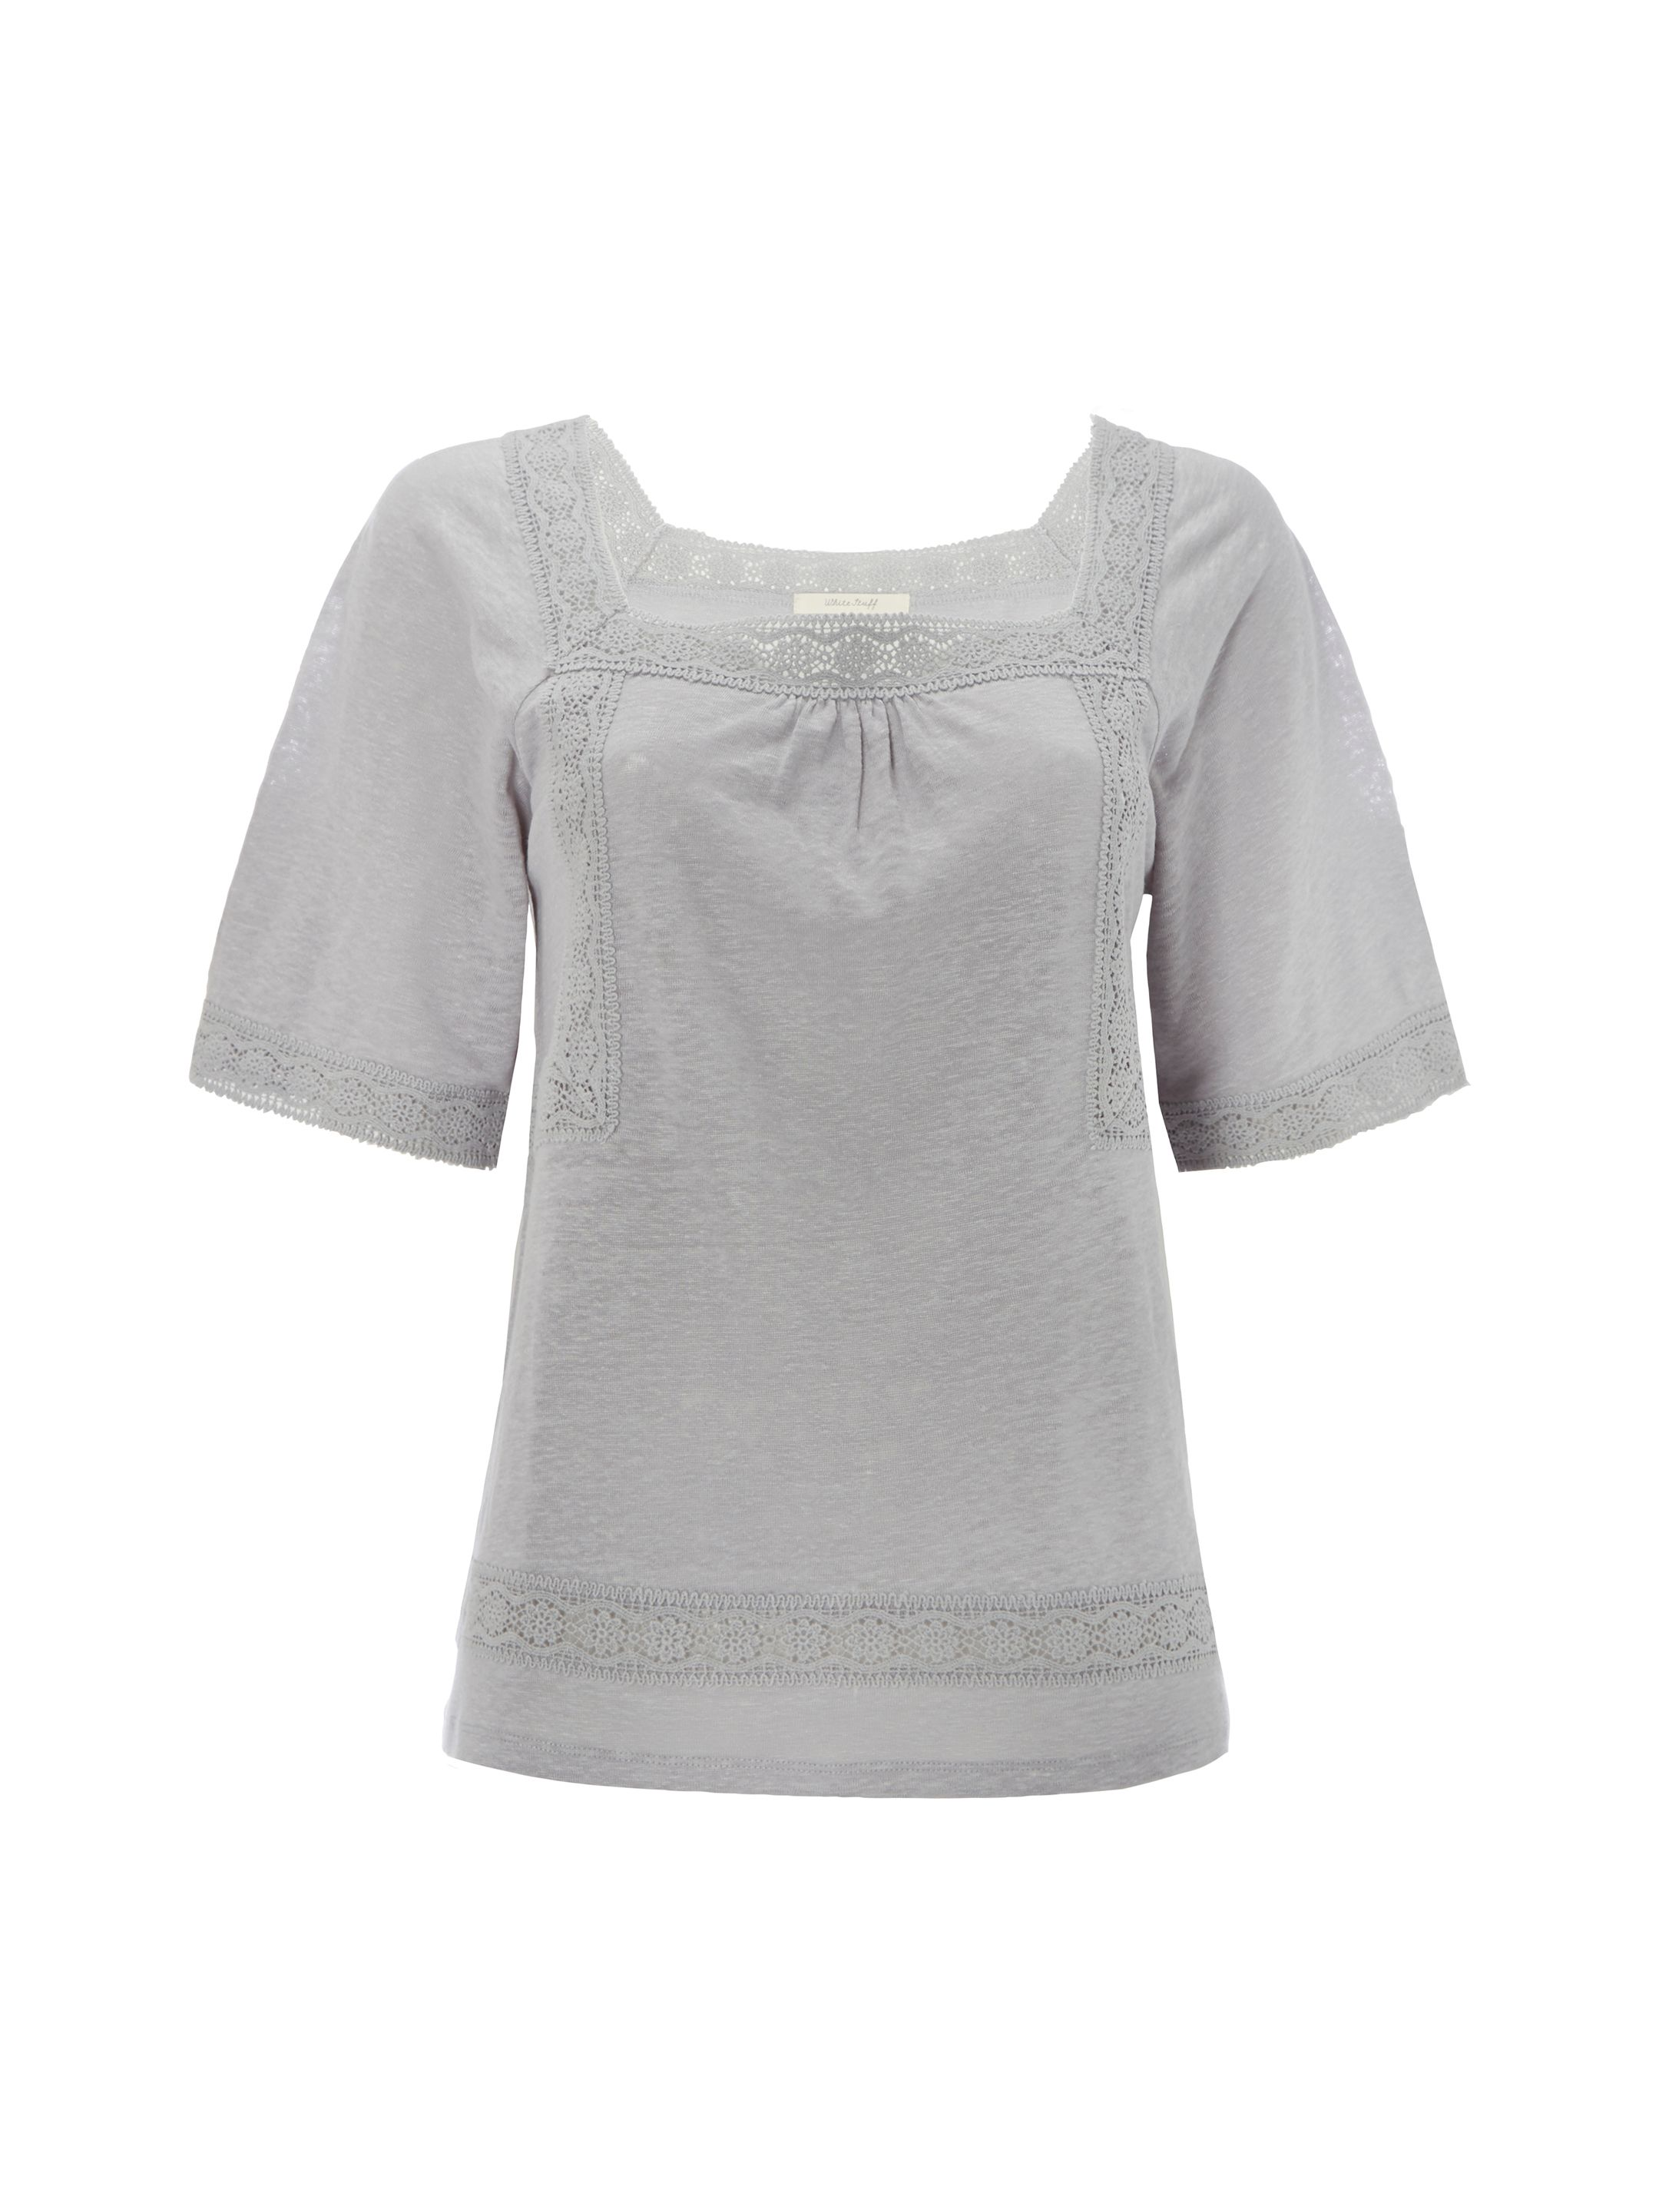 White Stuff Heidi High Linen Jersey Tee, Grey